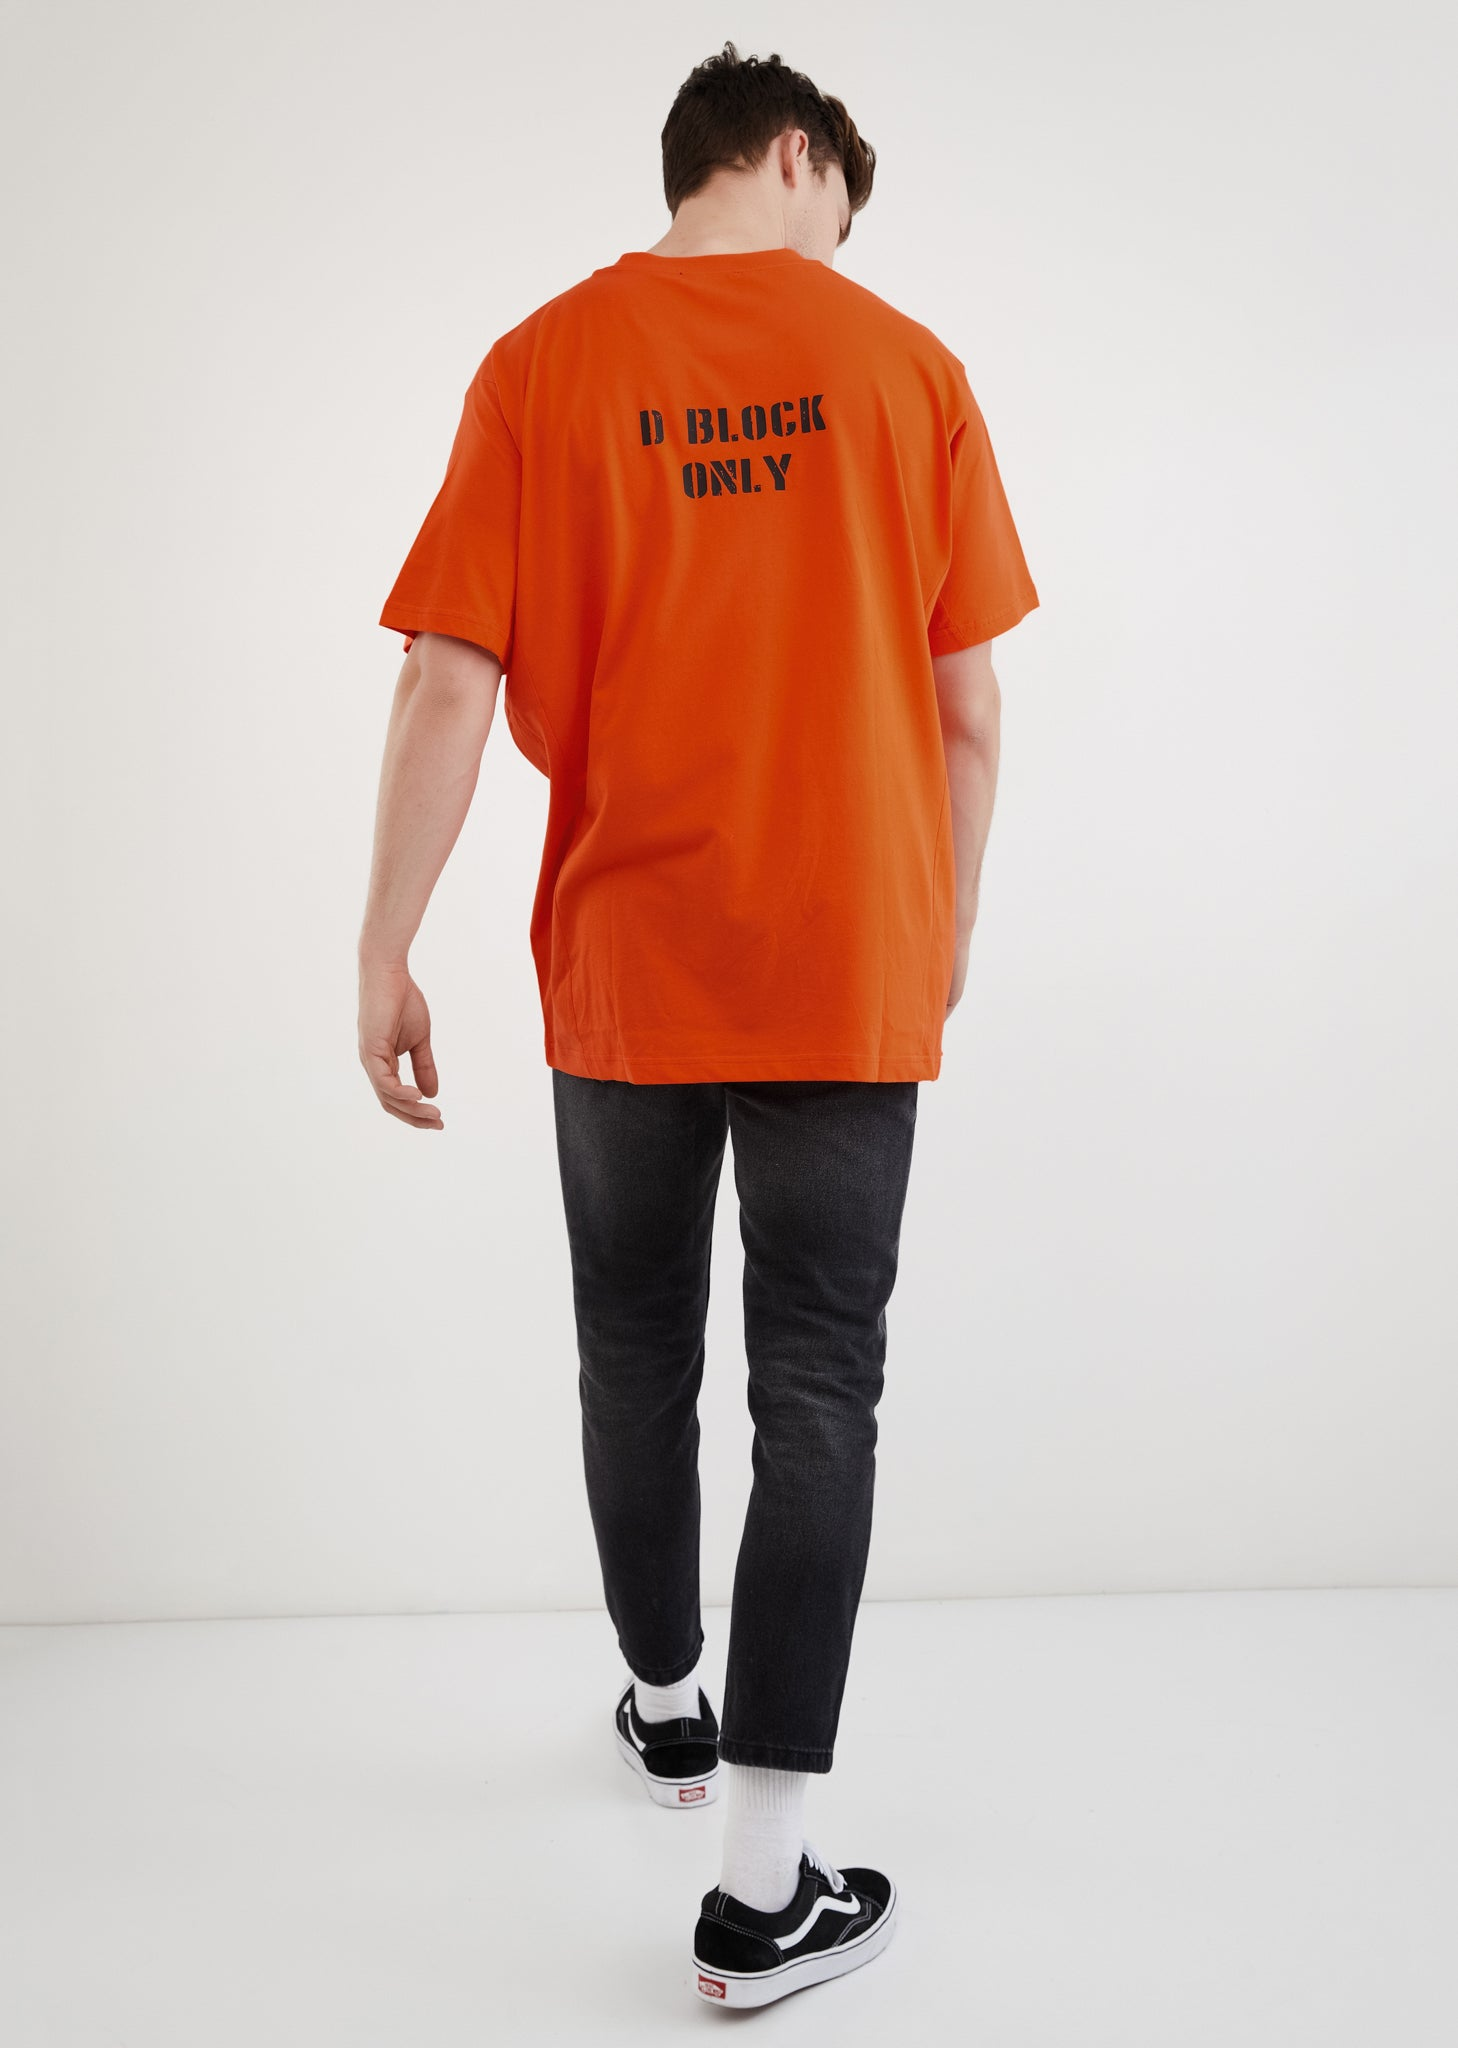 D Block Only (Serial Number) / Oversize T-shirt